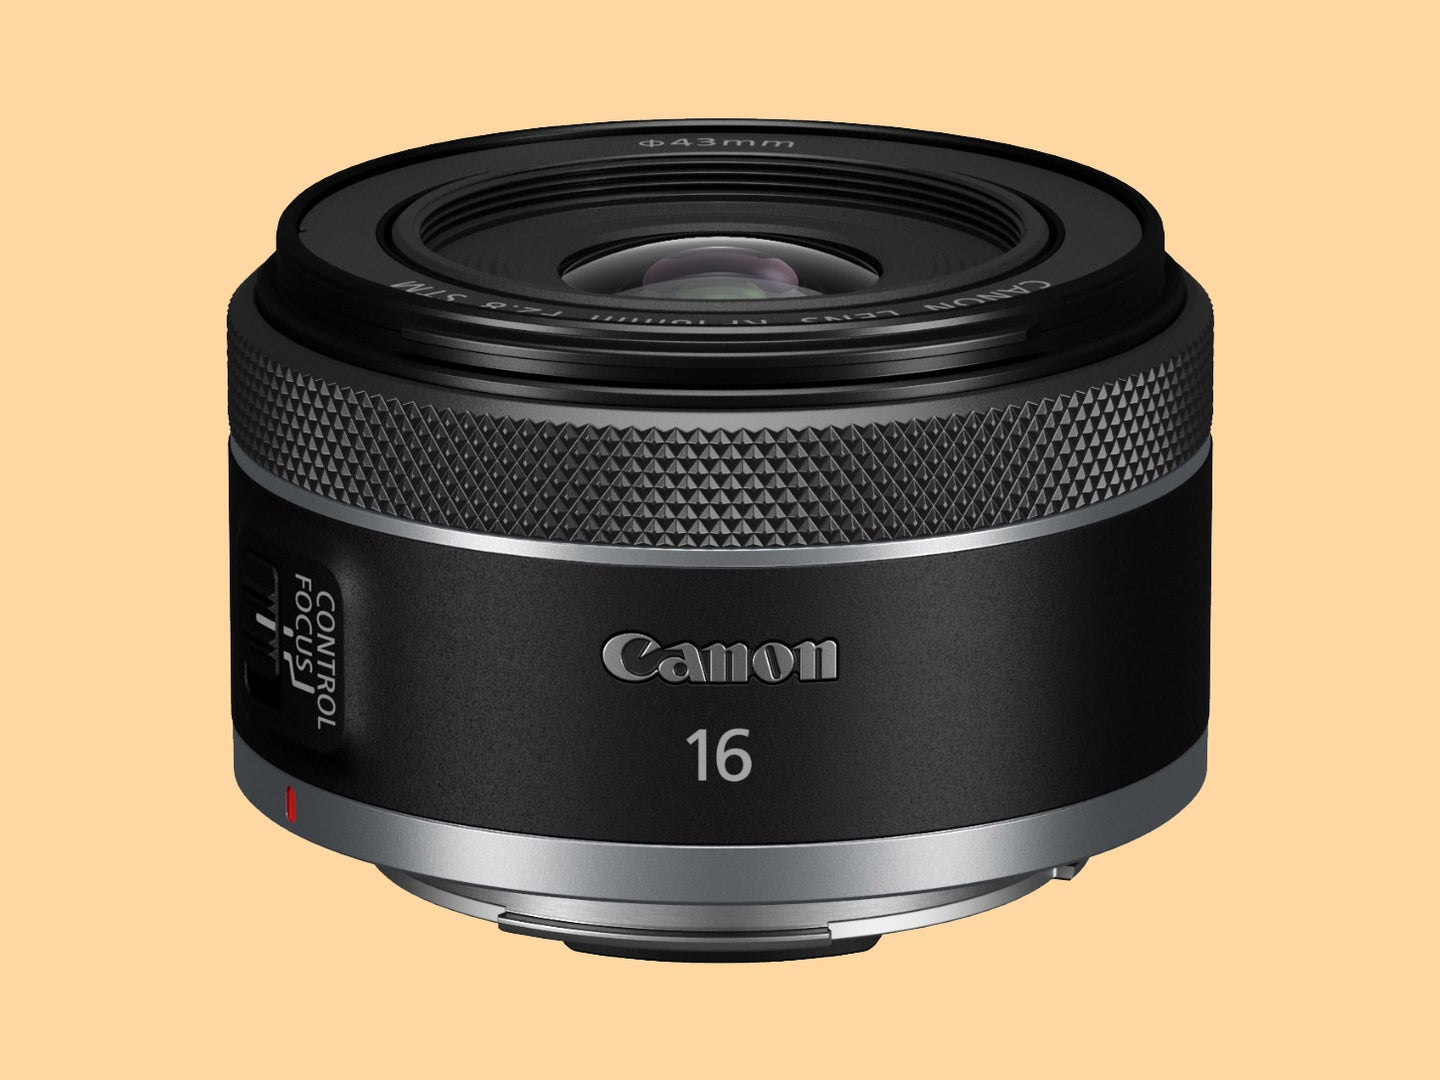 Canon RF 16mm F2.8 STM front